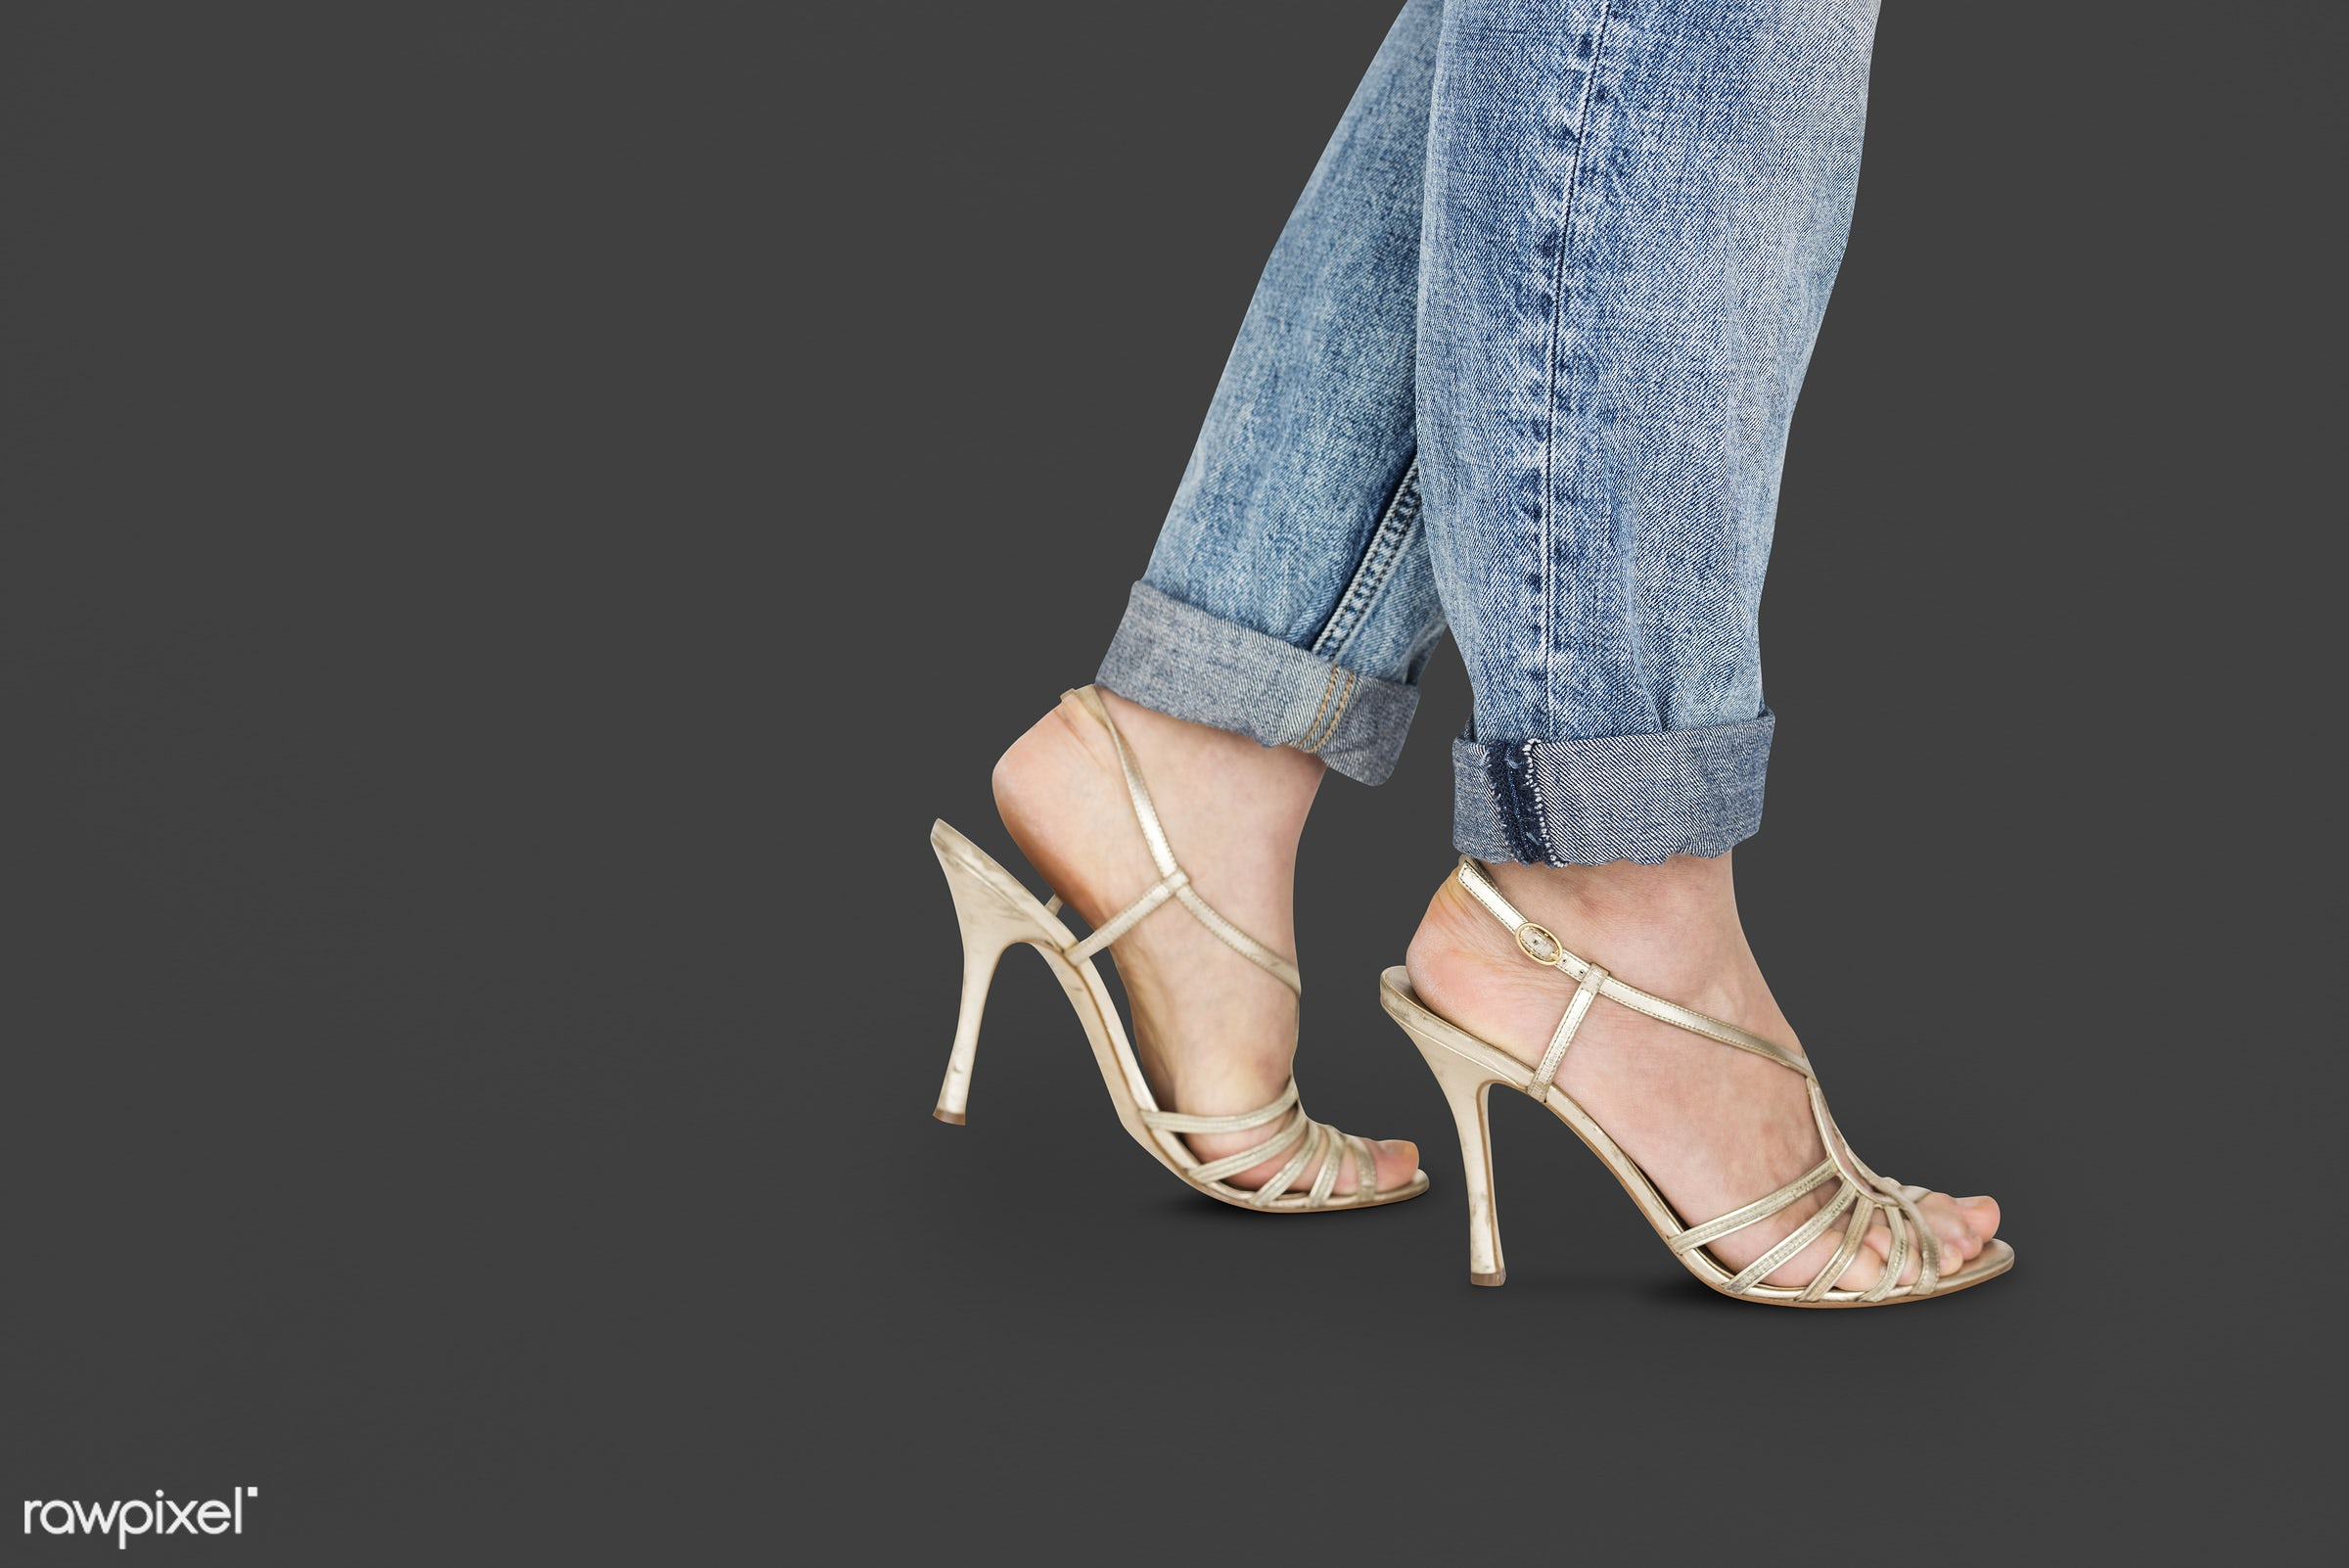 studio, fashion, model, person, people, race, style, solo, woman, lifestyle, casual, feminism, shoes, isolated, jeans,...